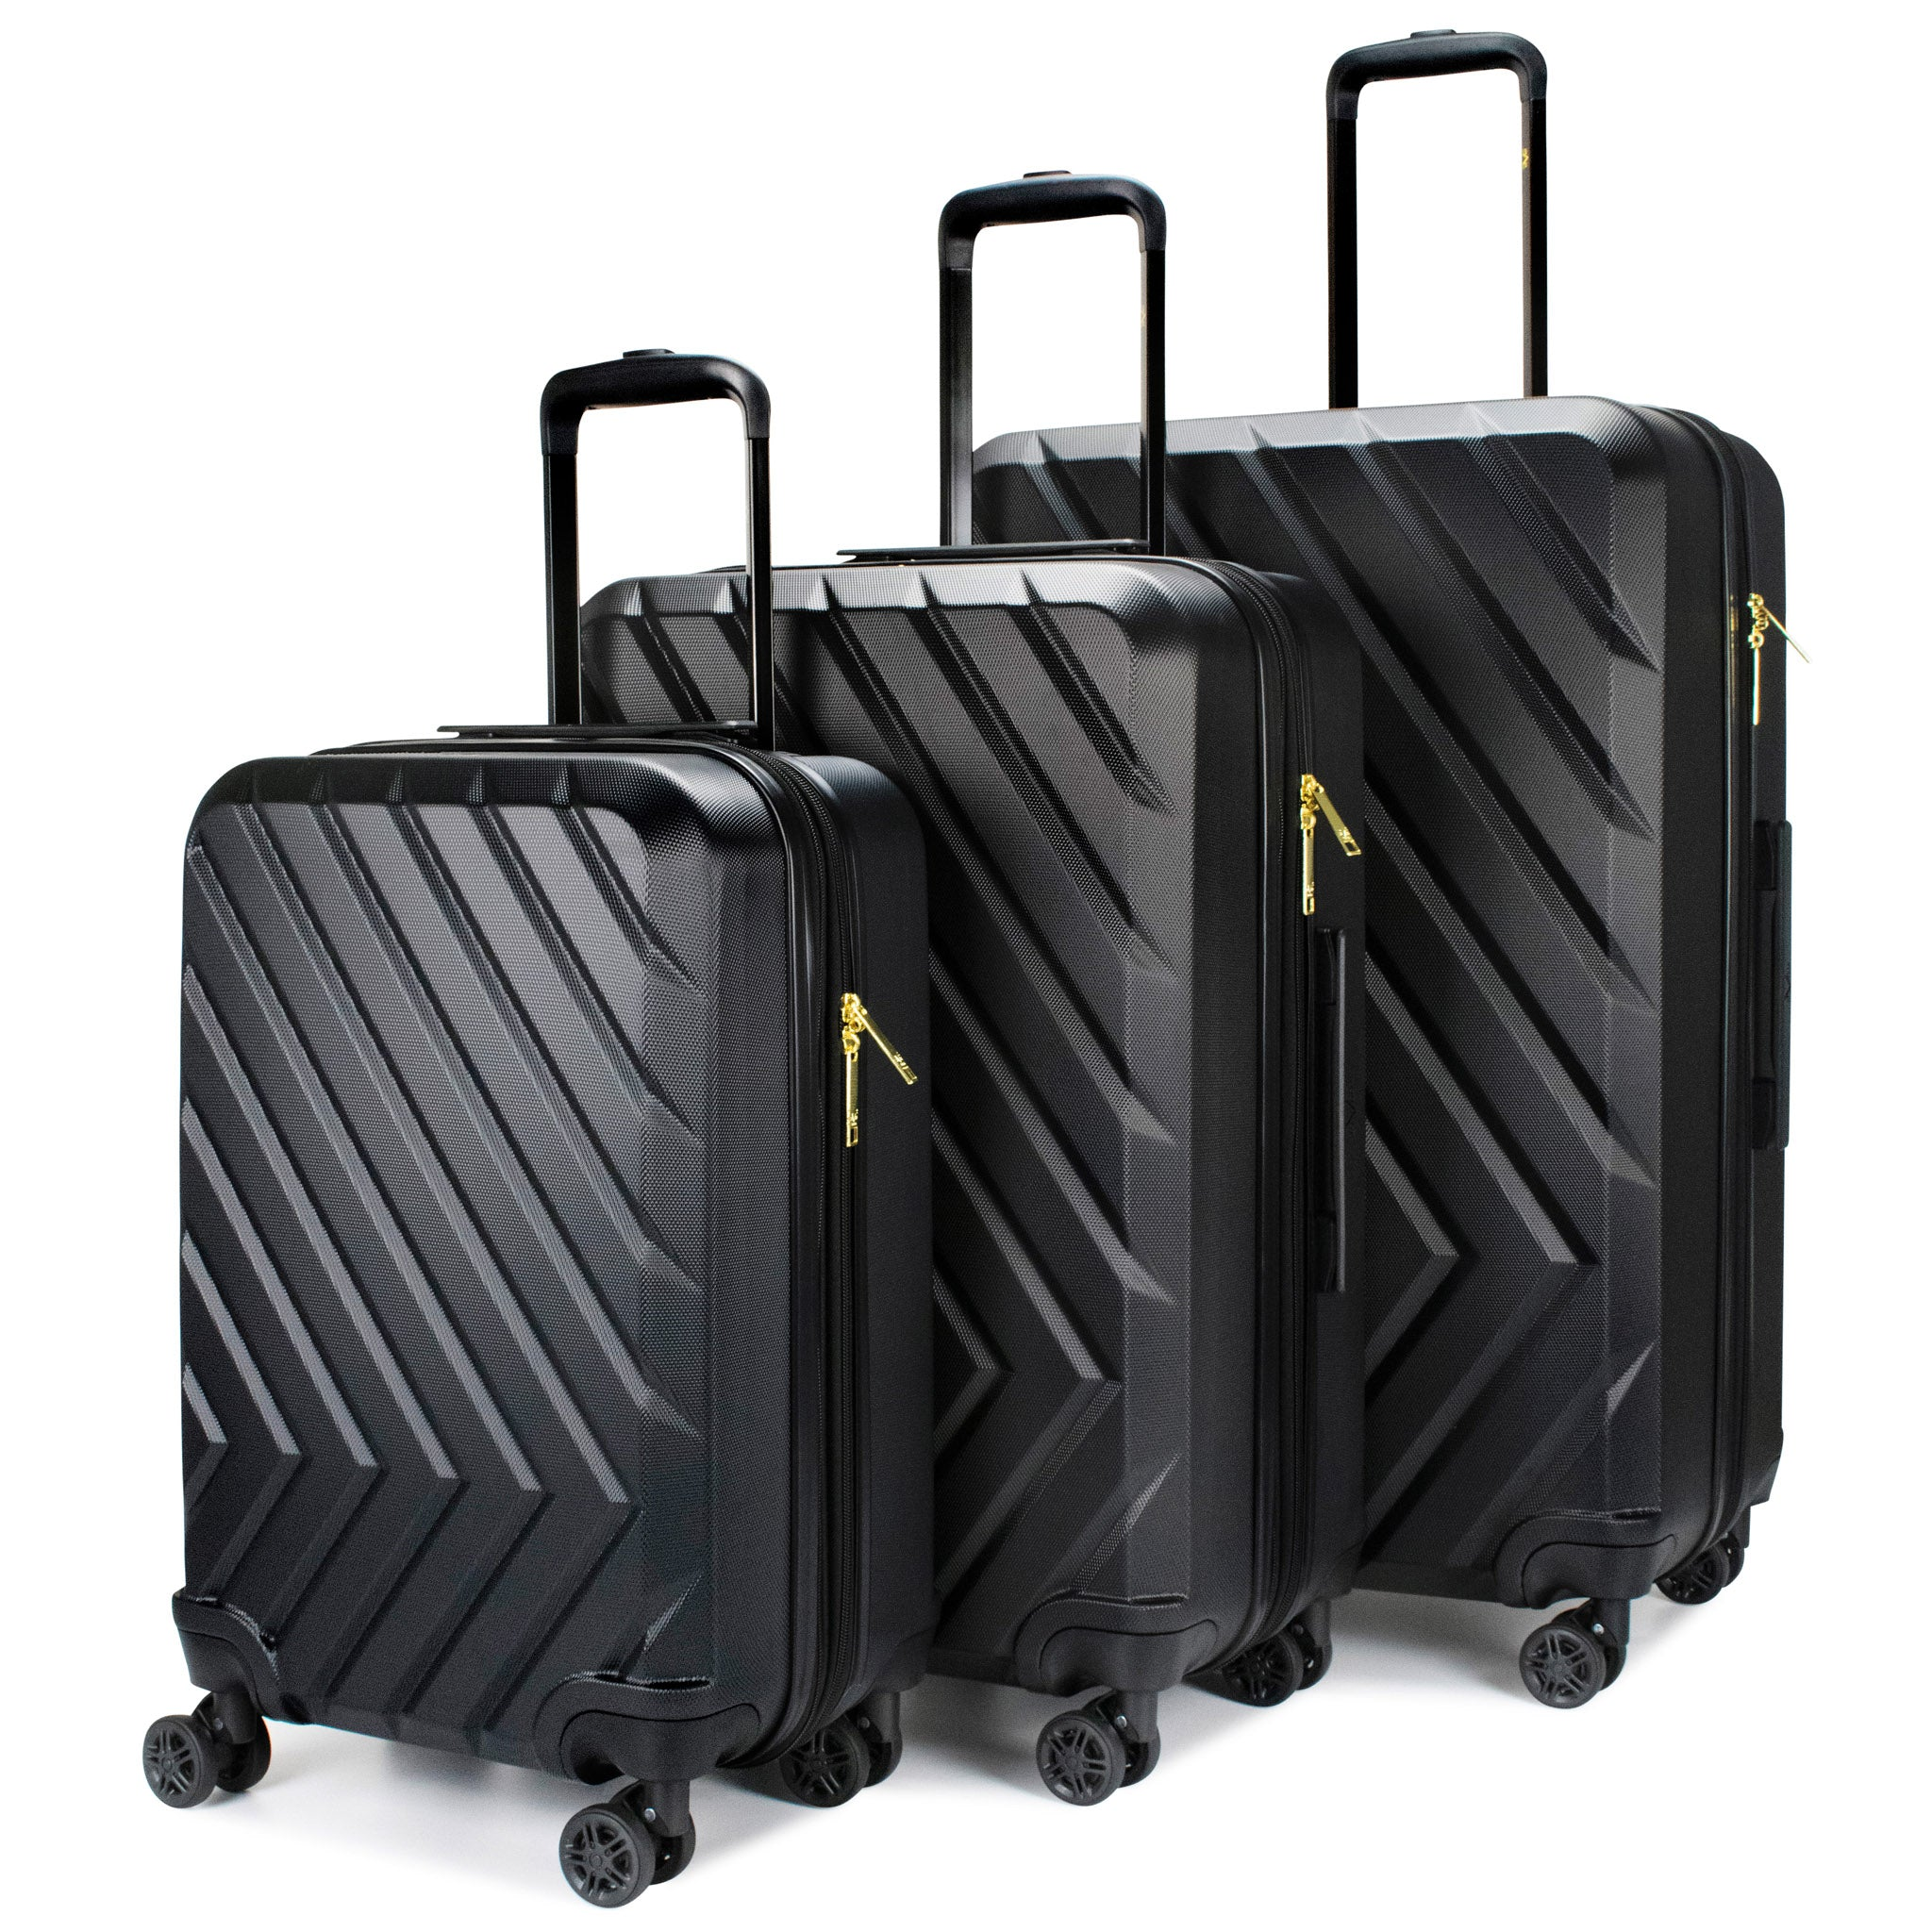 Arrow 3 Piece Expandable Hard Luggage Set (Black)